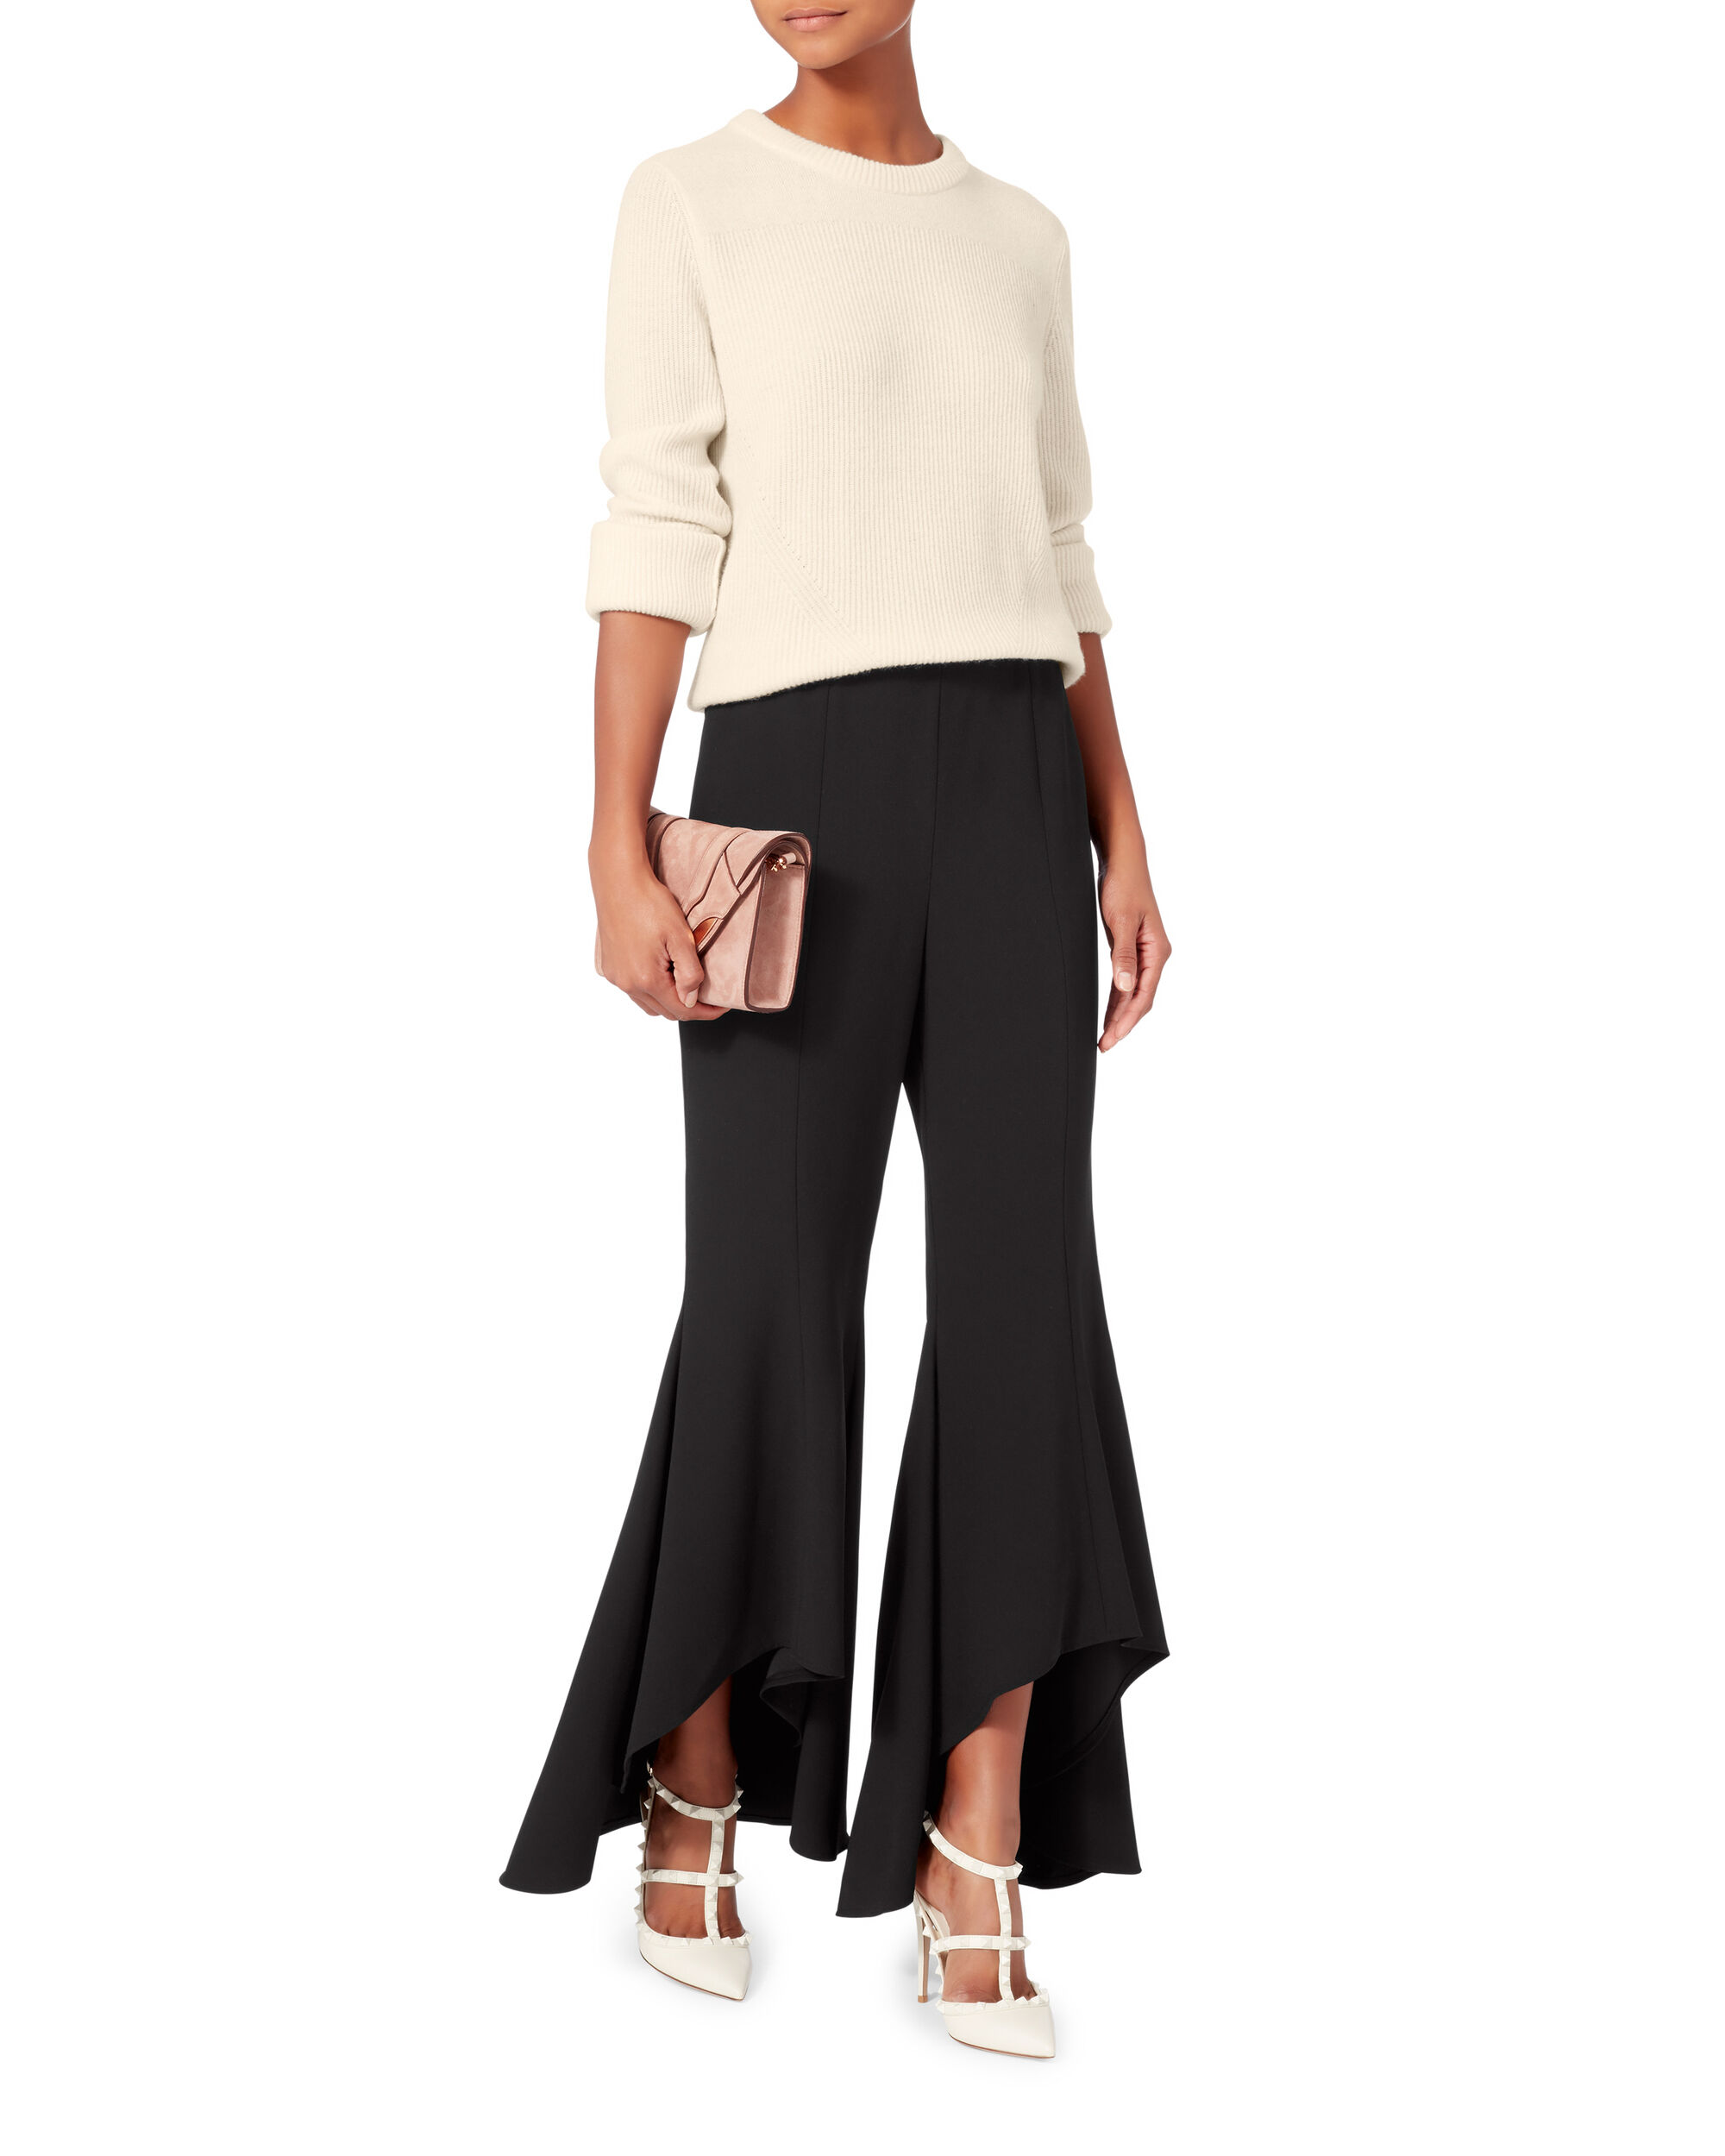 Ace Cropped Sweater, IVORY, hi-res